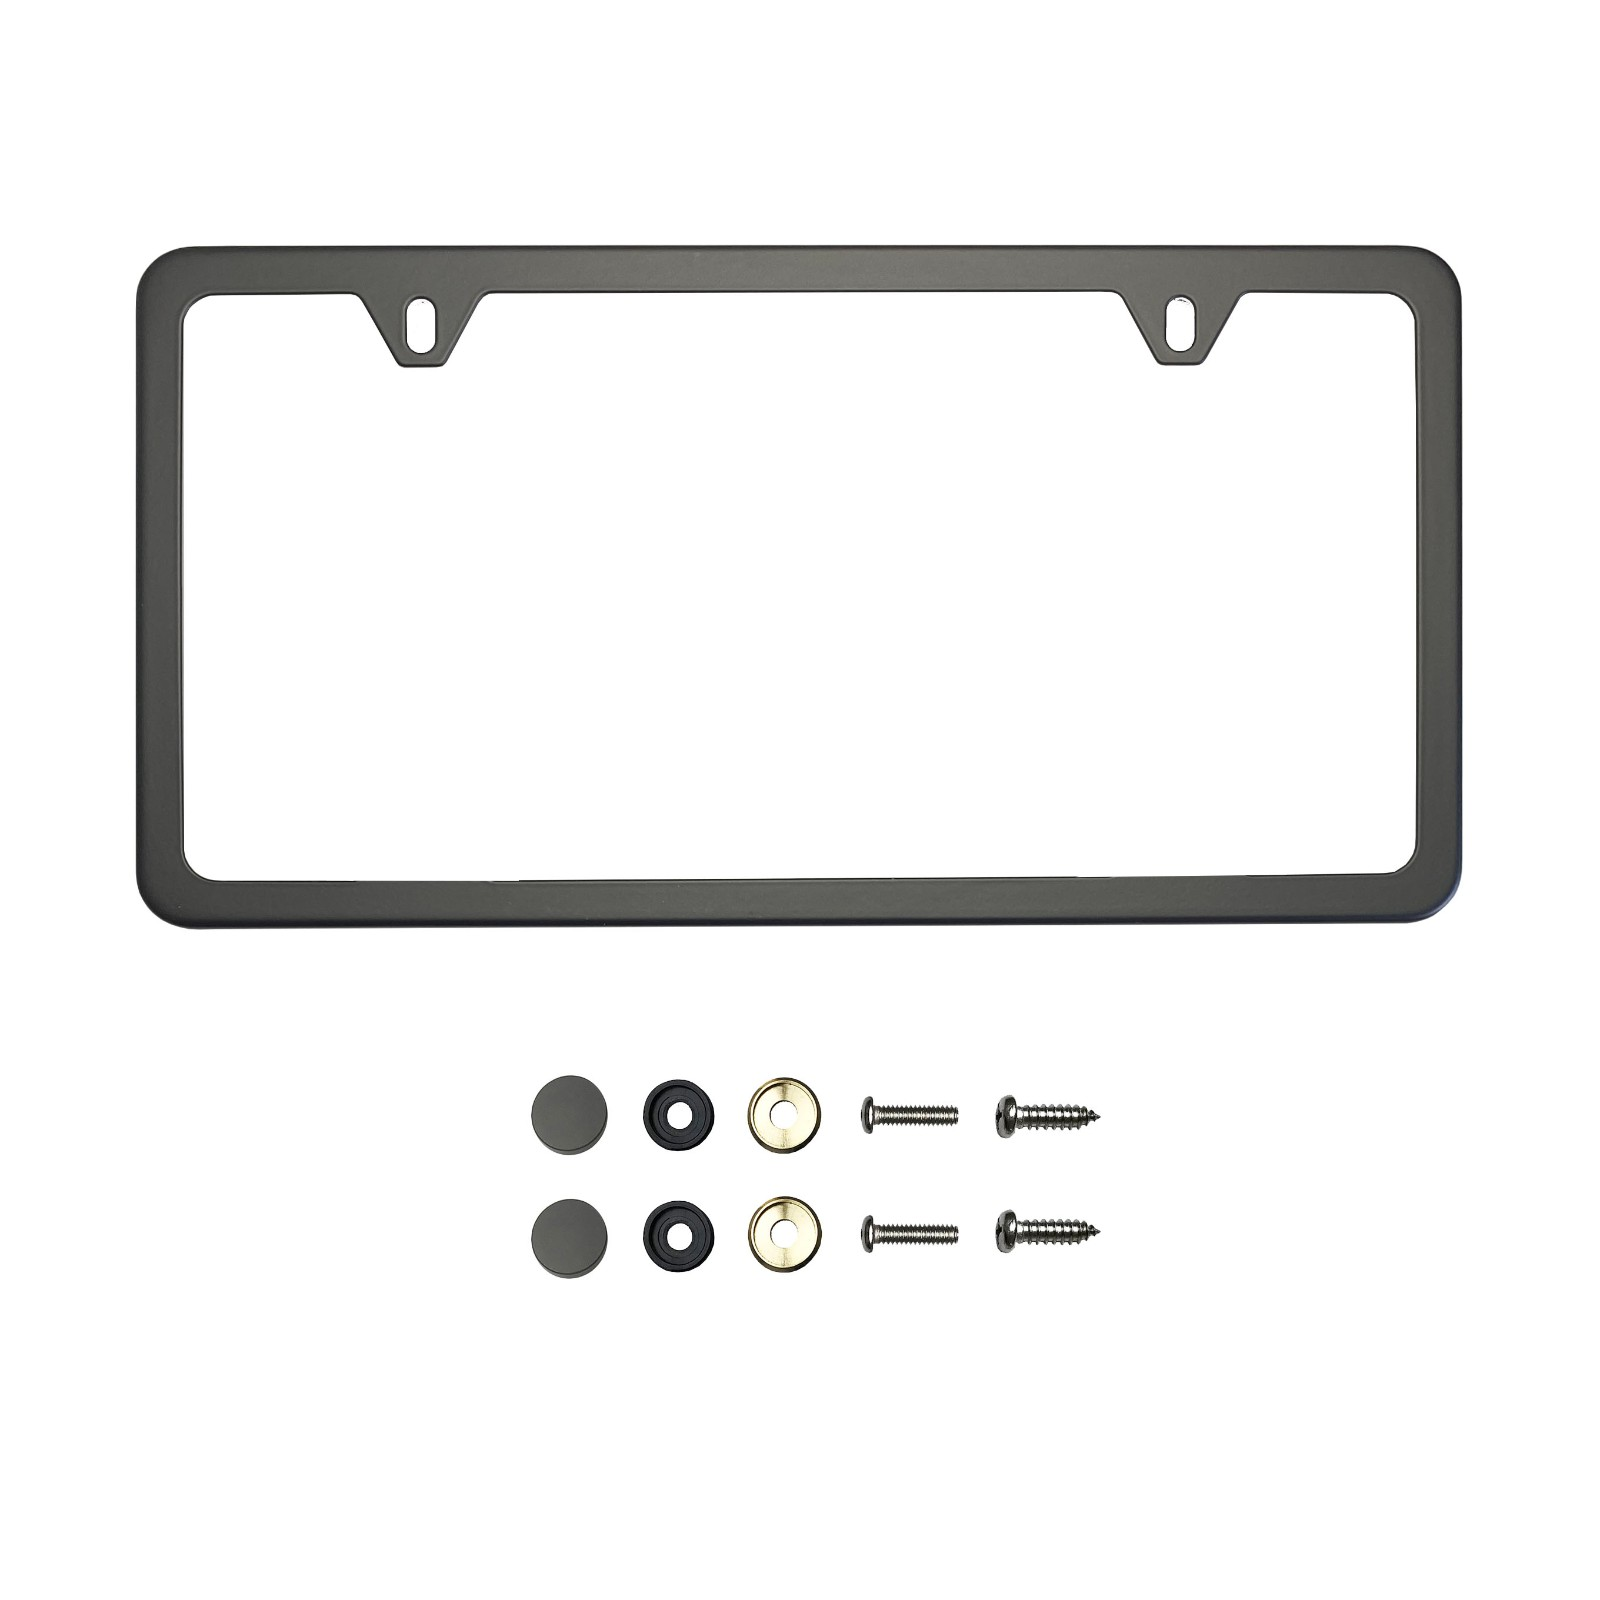 KA Depot Four Hole Slim Version Matte Flat Black License Plate Frame T304 Stainless Steel Metal Screw Caps